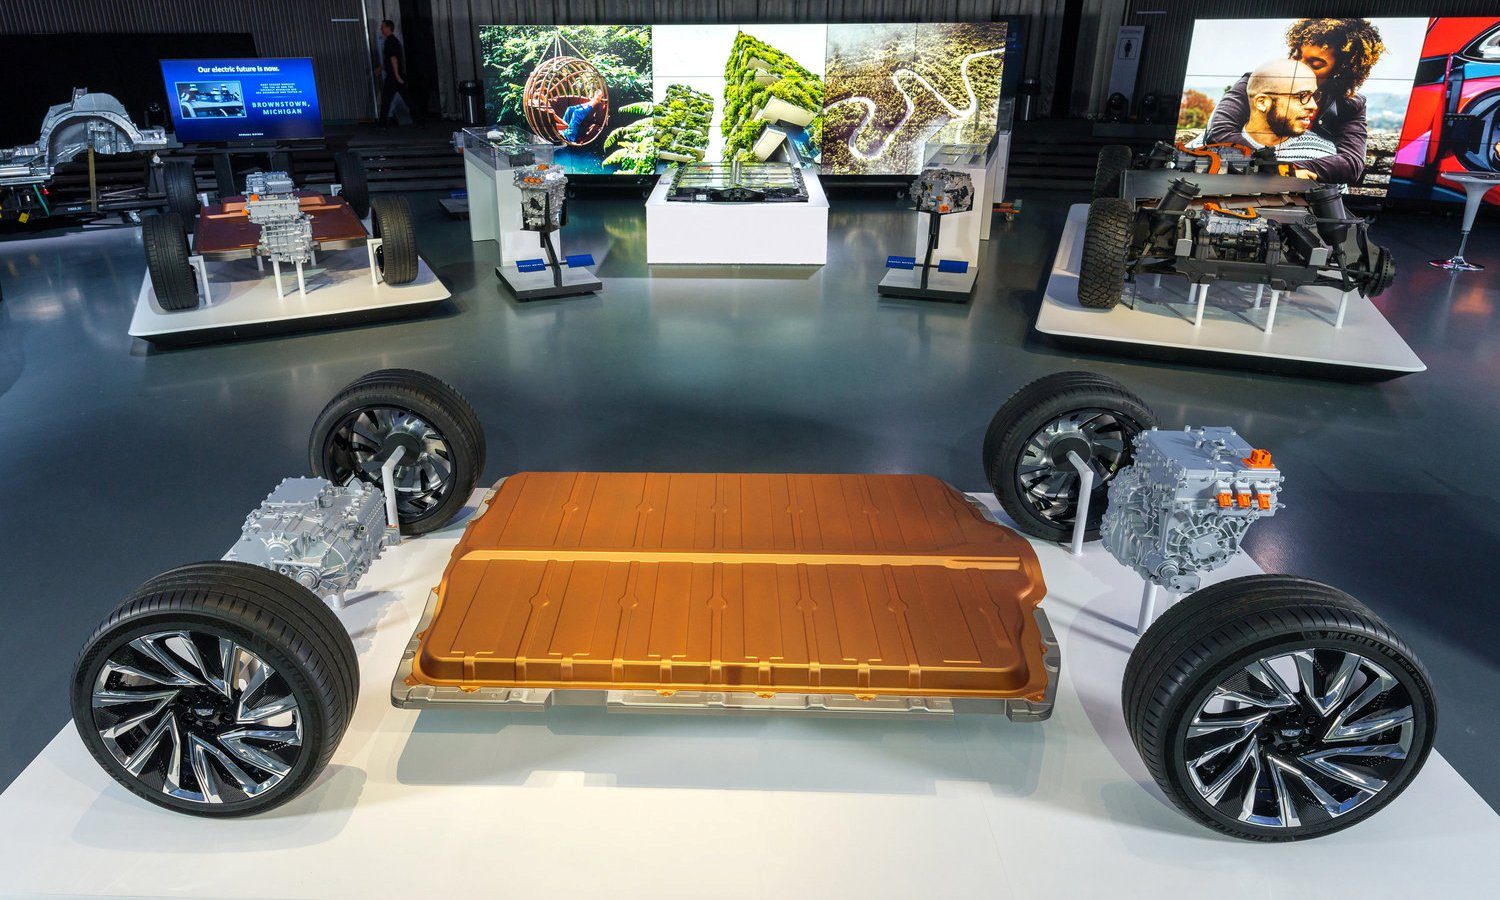 General Motors new modular platform and battery system Ultium